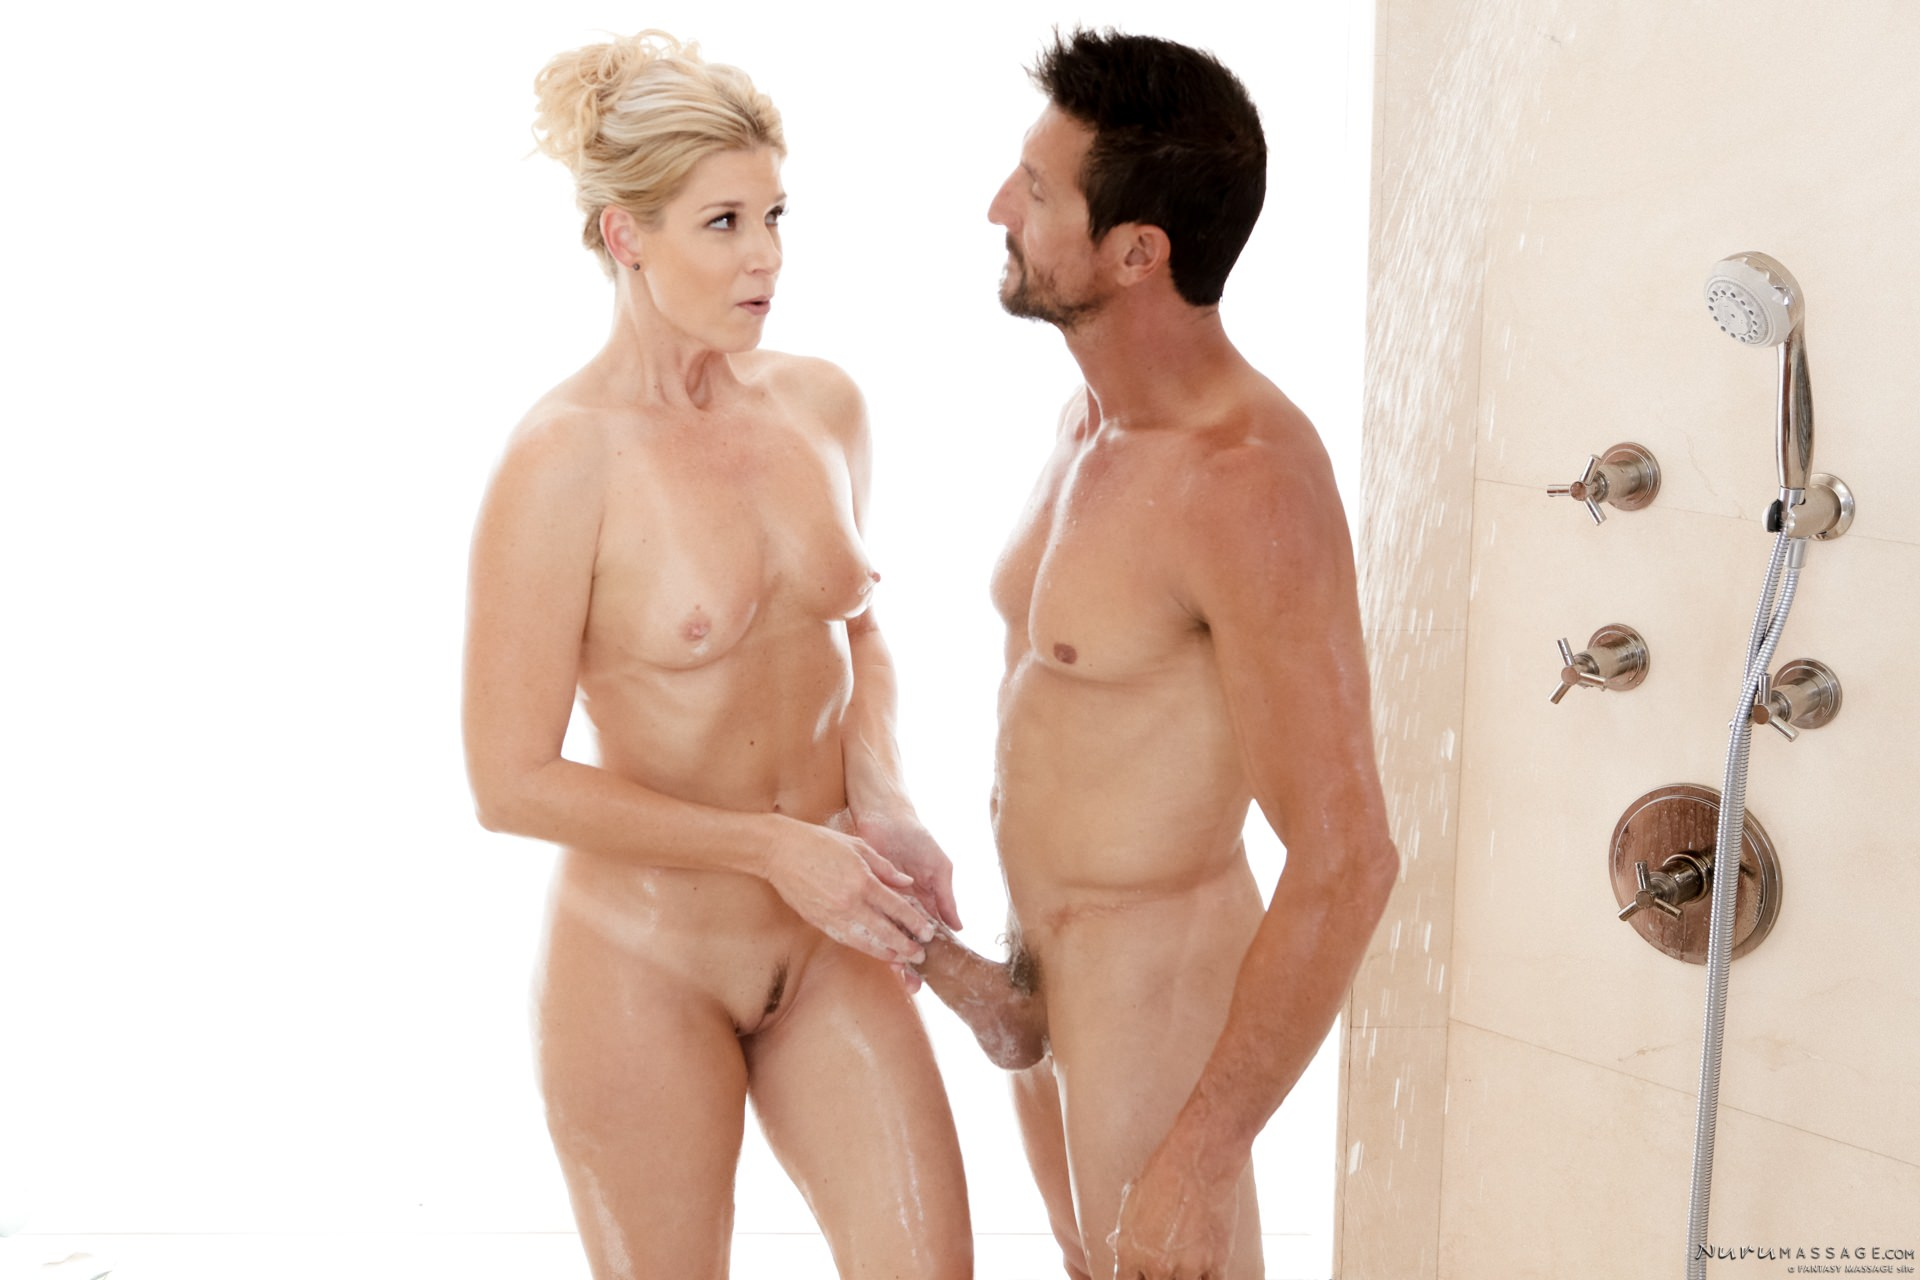 India Summer: The Boss And The Client - 4